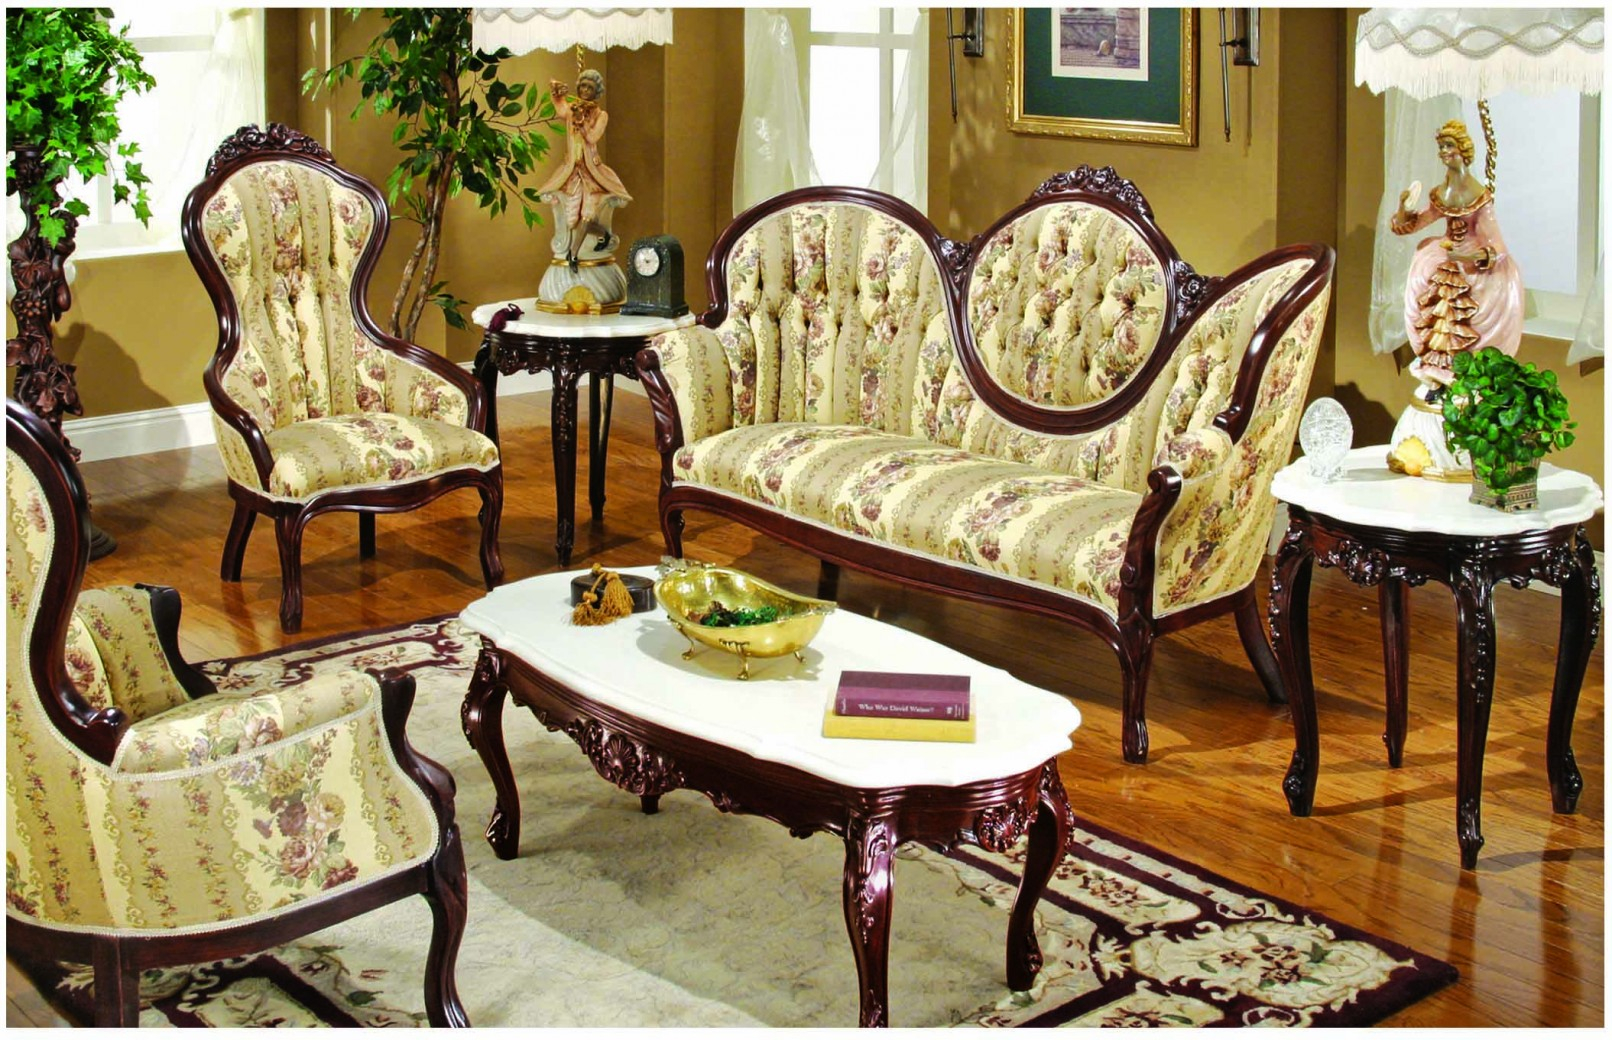 605 Aj Floral Fabric Polrey French Provincial Style Living Room Set for 13 Clever Designs of How to Makeover French Provincial Living Room Set